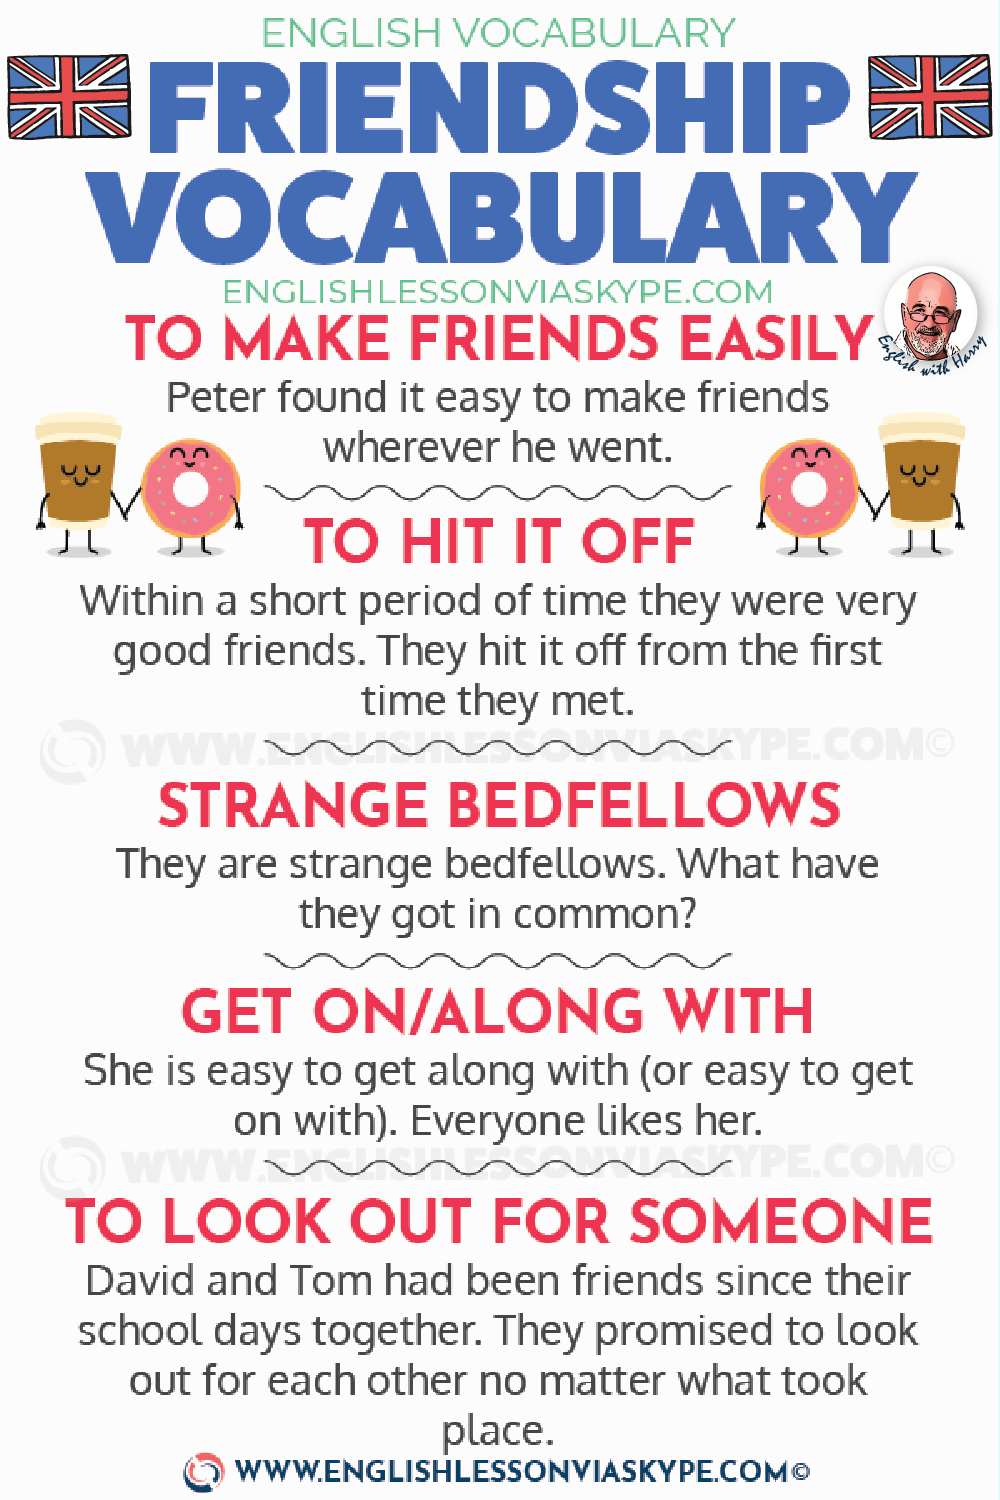 English Expressions about Friendship. Improve English skills. #learnenglish #englishlessons #englishteacher #englishvocabulary #ingles #aprenderingles